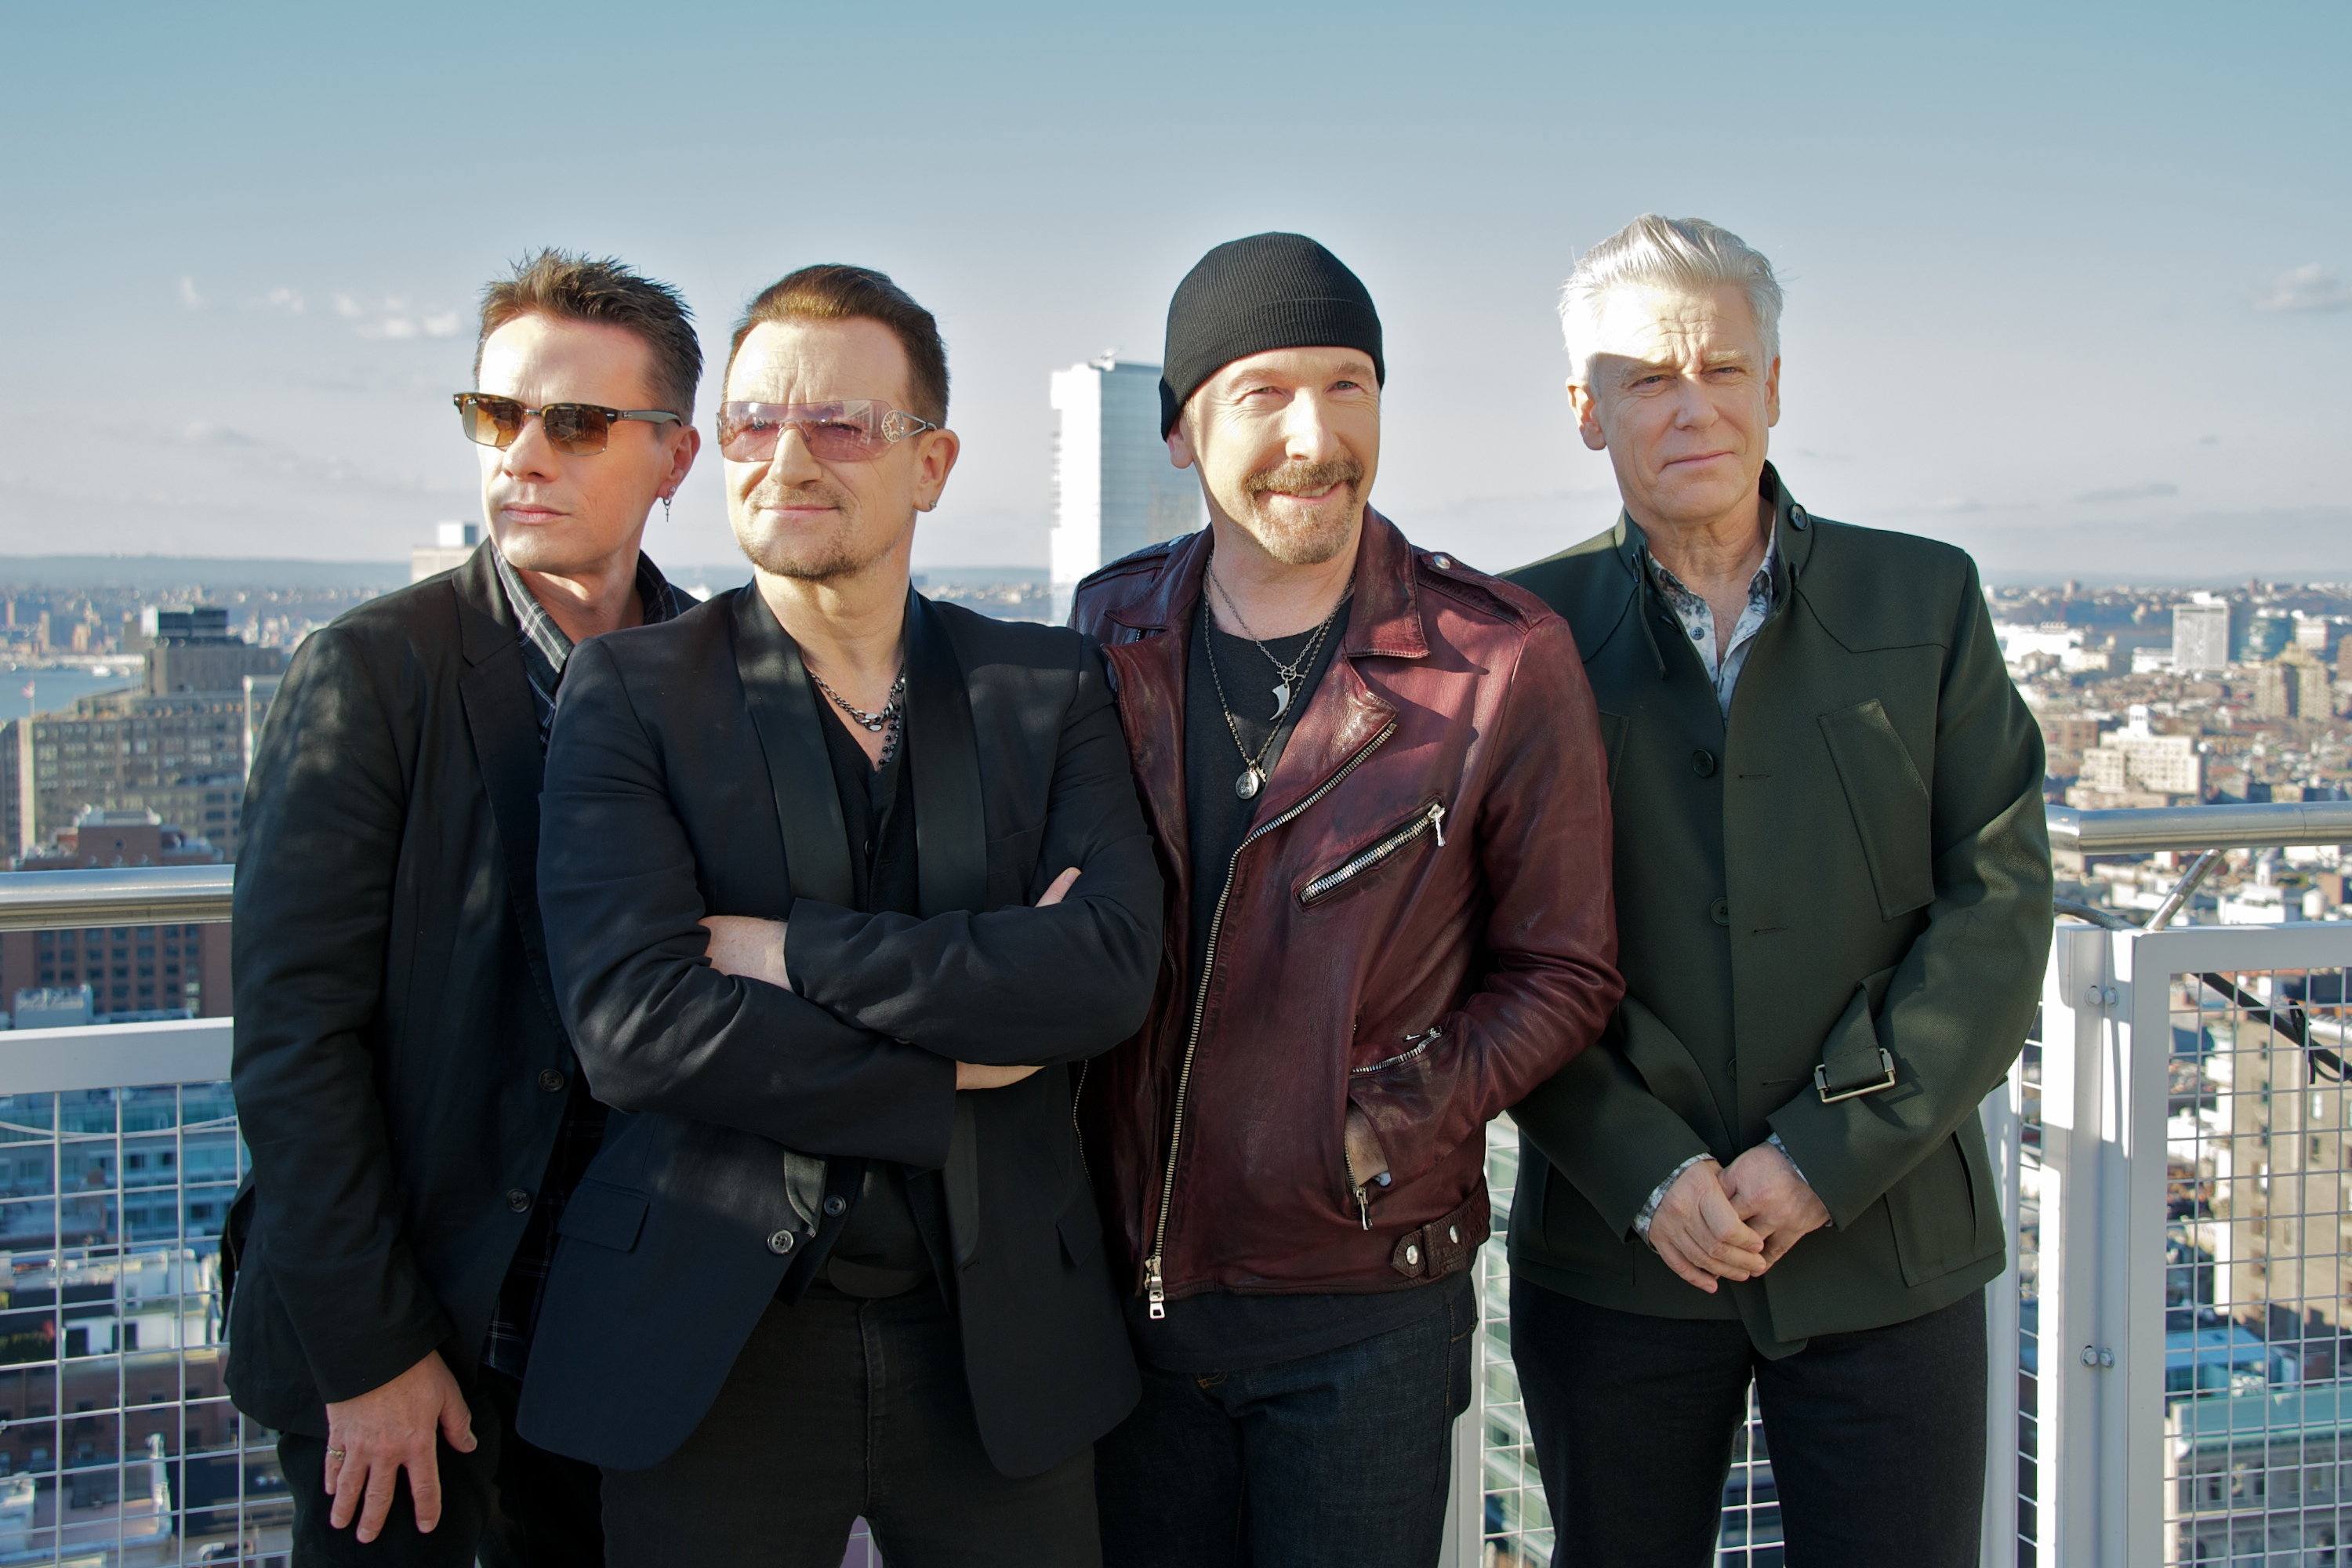 U2 Reveal Intimate Album Cover for 'Songs of Innocence'